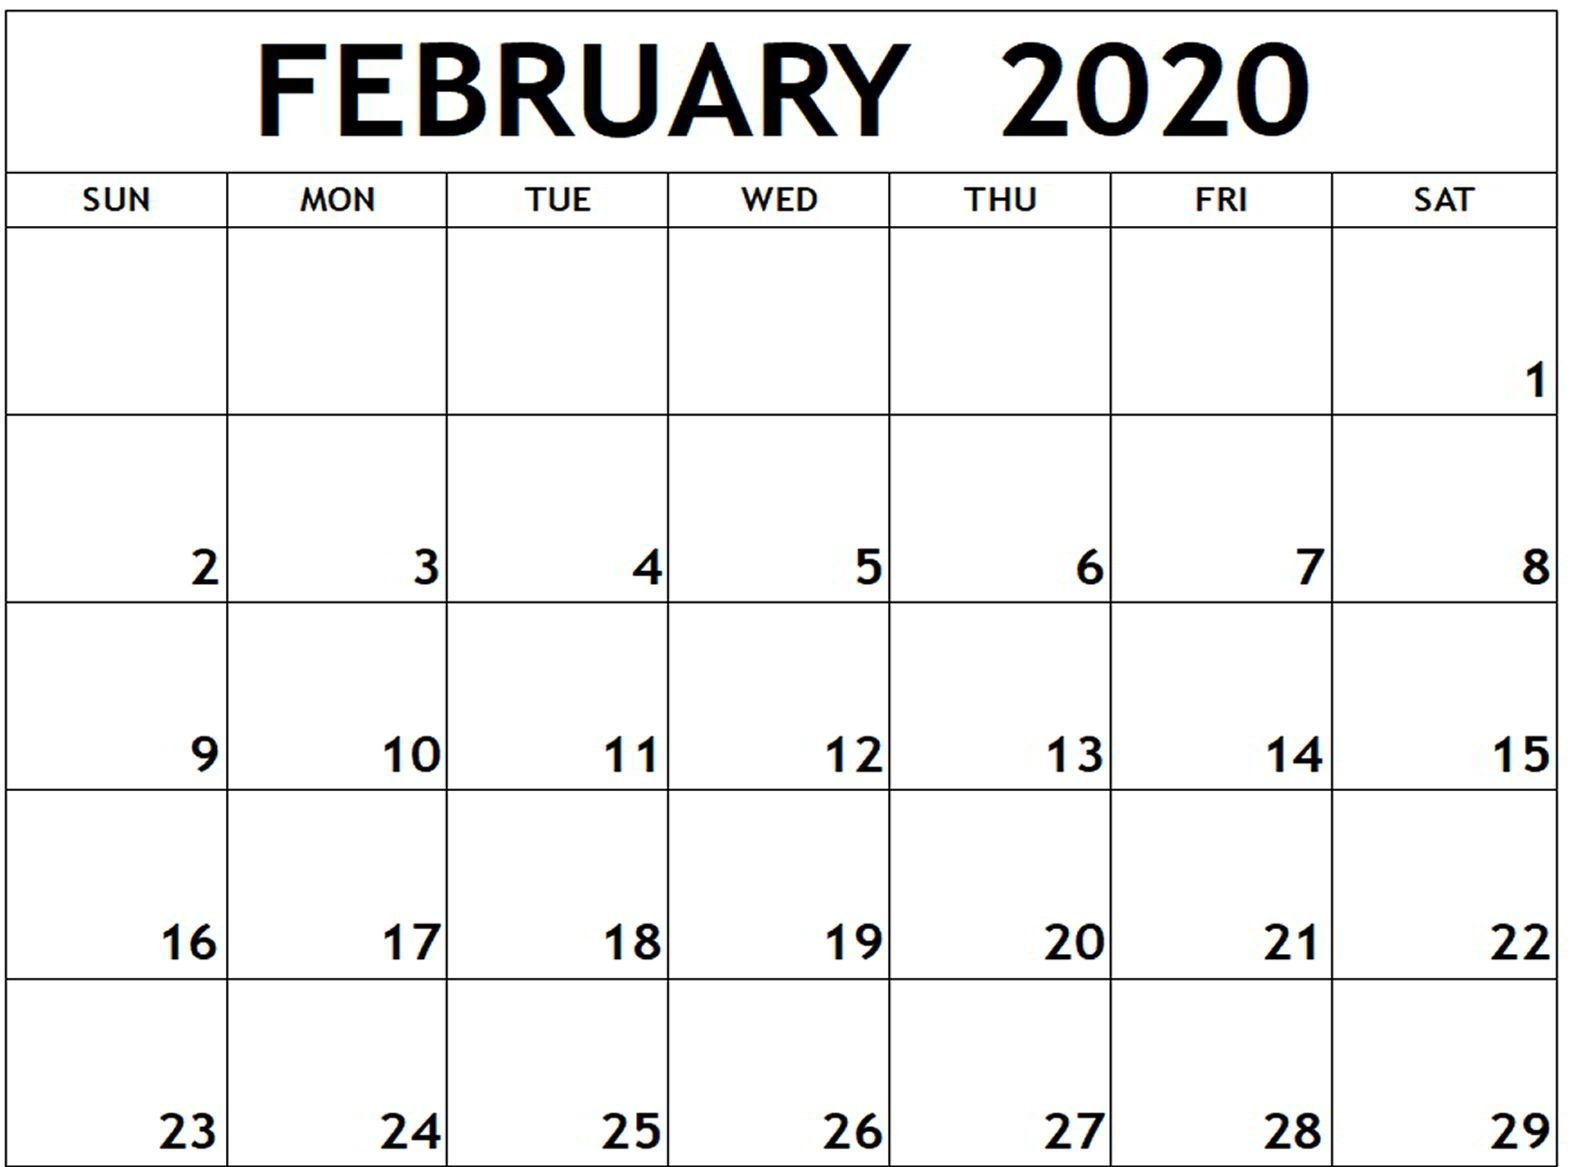 Free Fillable February Calendar 2020 Printable Editable With I Need A Calendar I Can Edit And Print Out Free